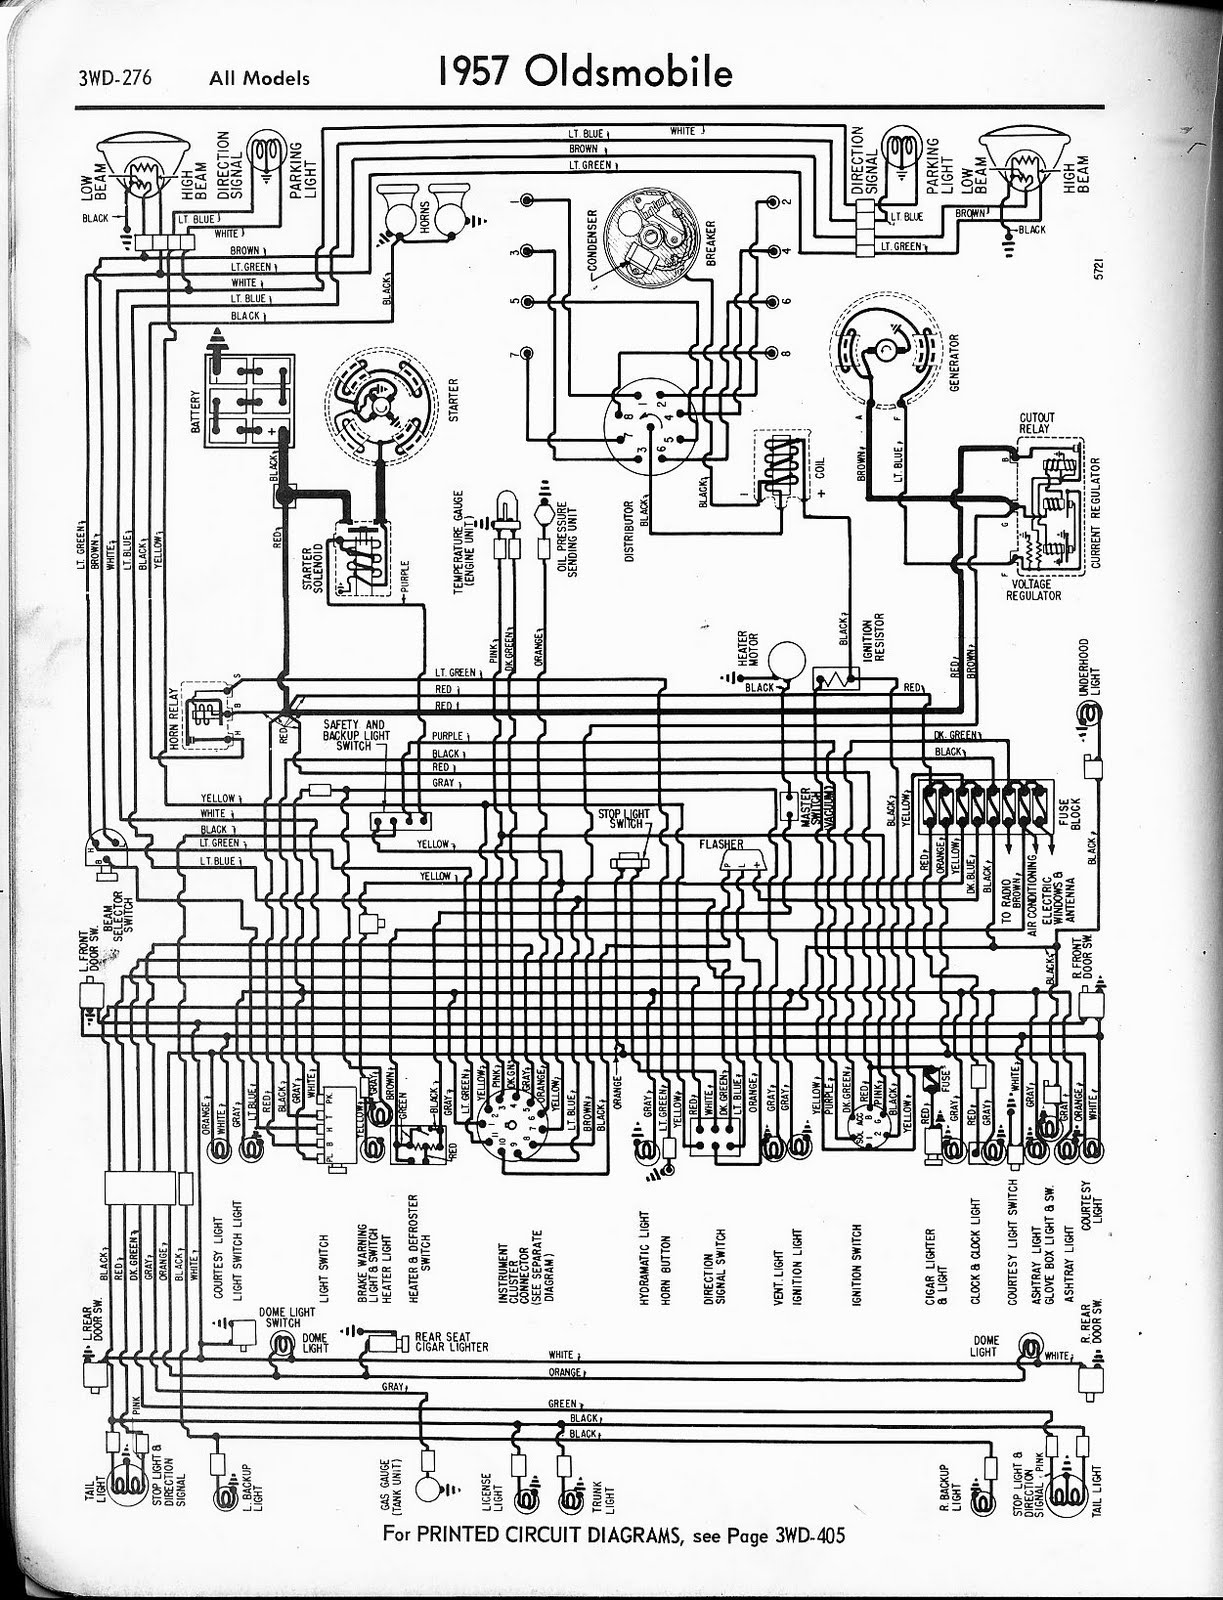 small resolution of free auto wiring diagram 1957 oldsmobile wiring diagram fiat stilo wiring diagram engine